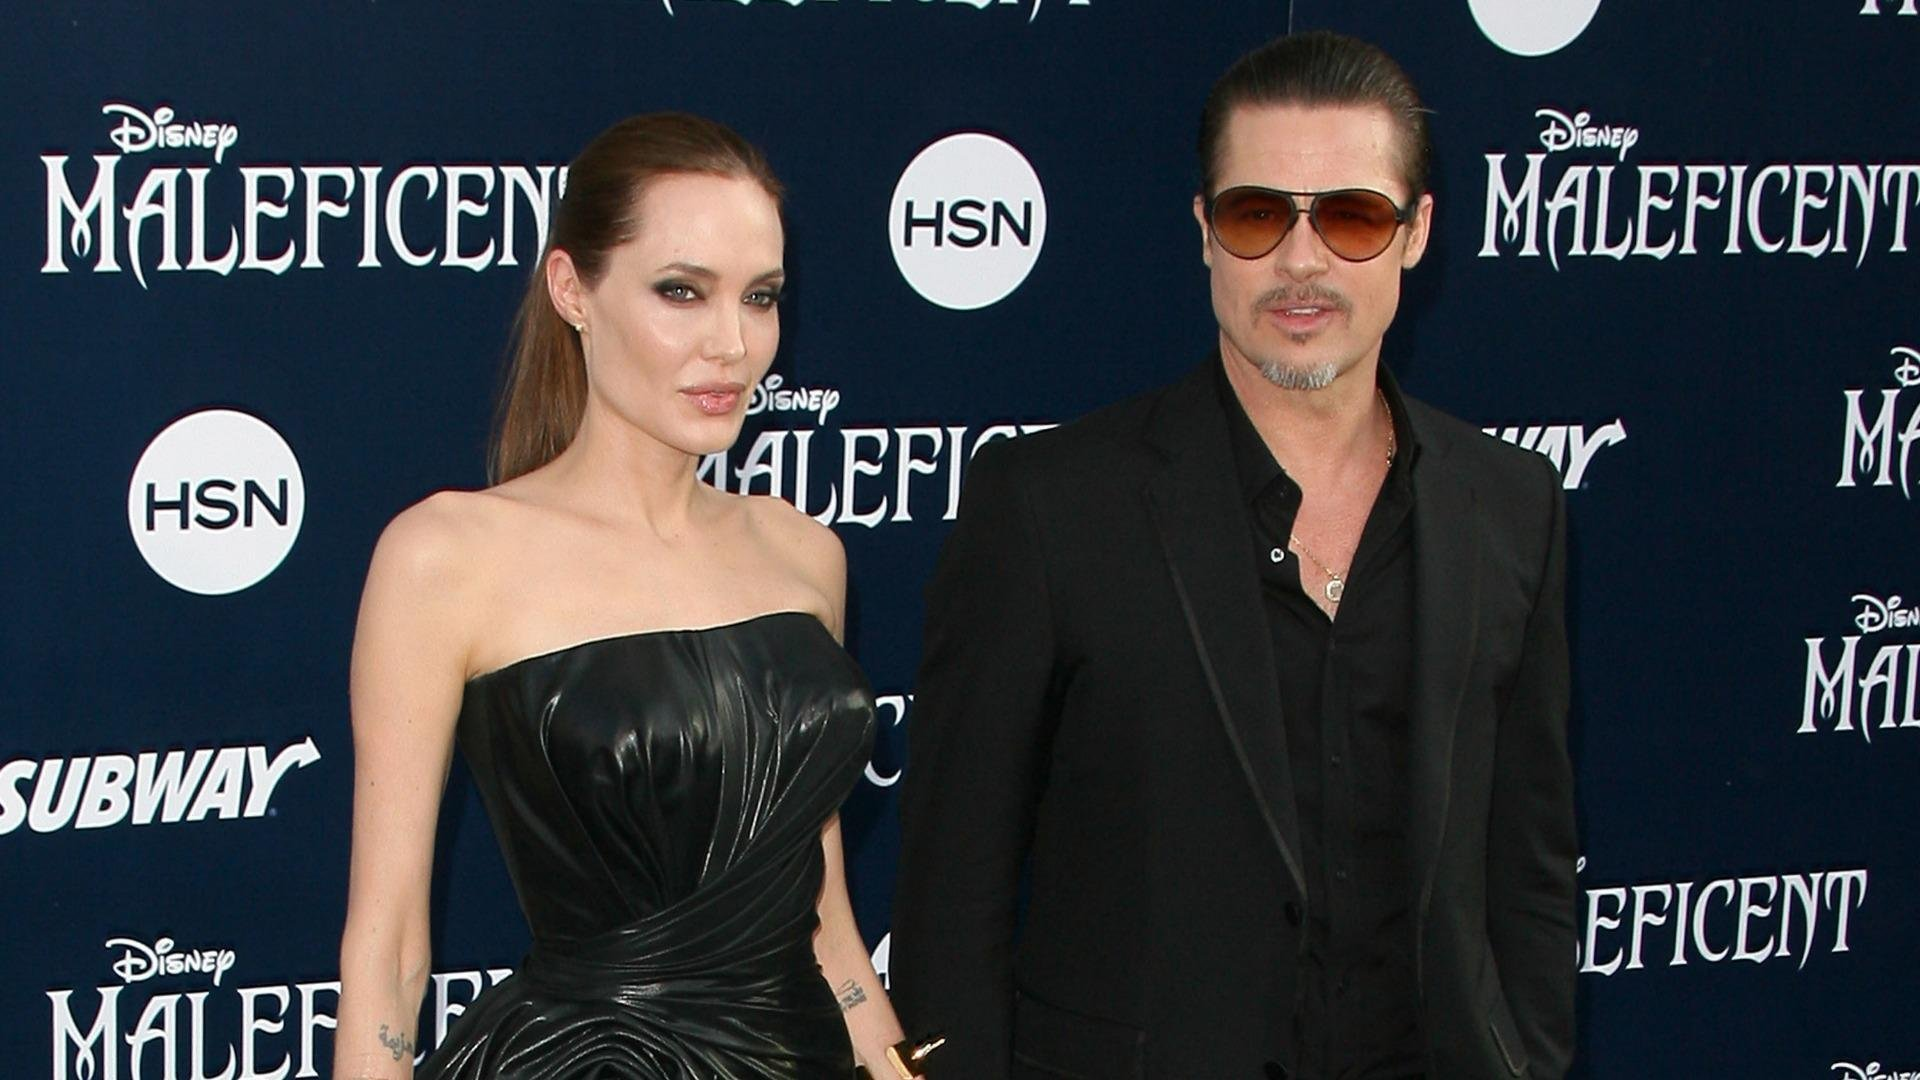 Power couple Brad Pitt and Angelina Jolie marry surrounded by friends and family